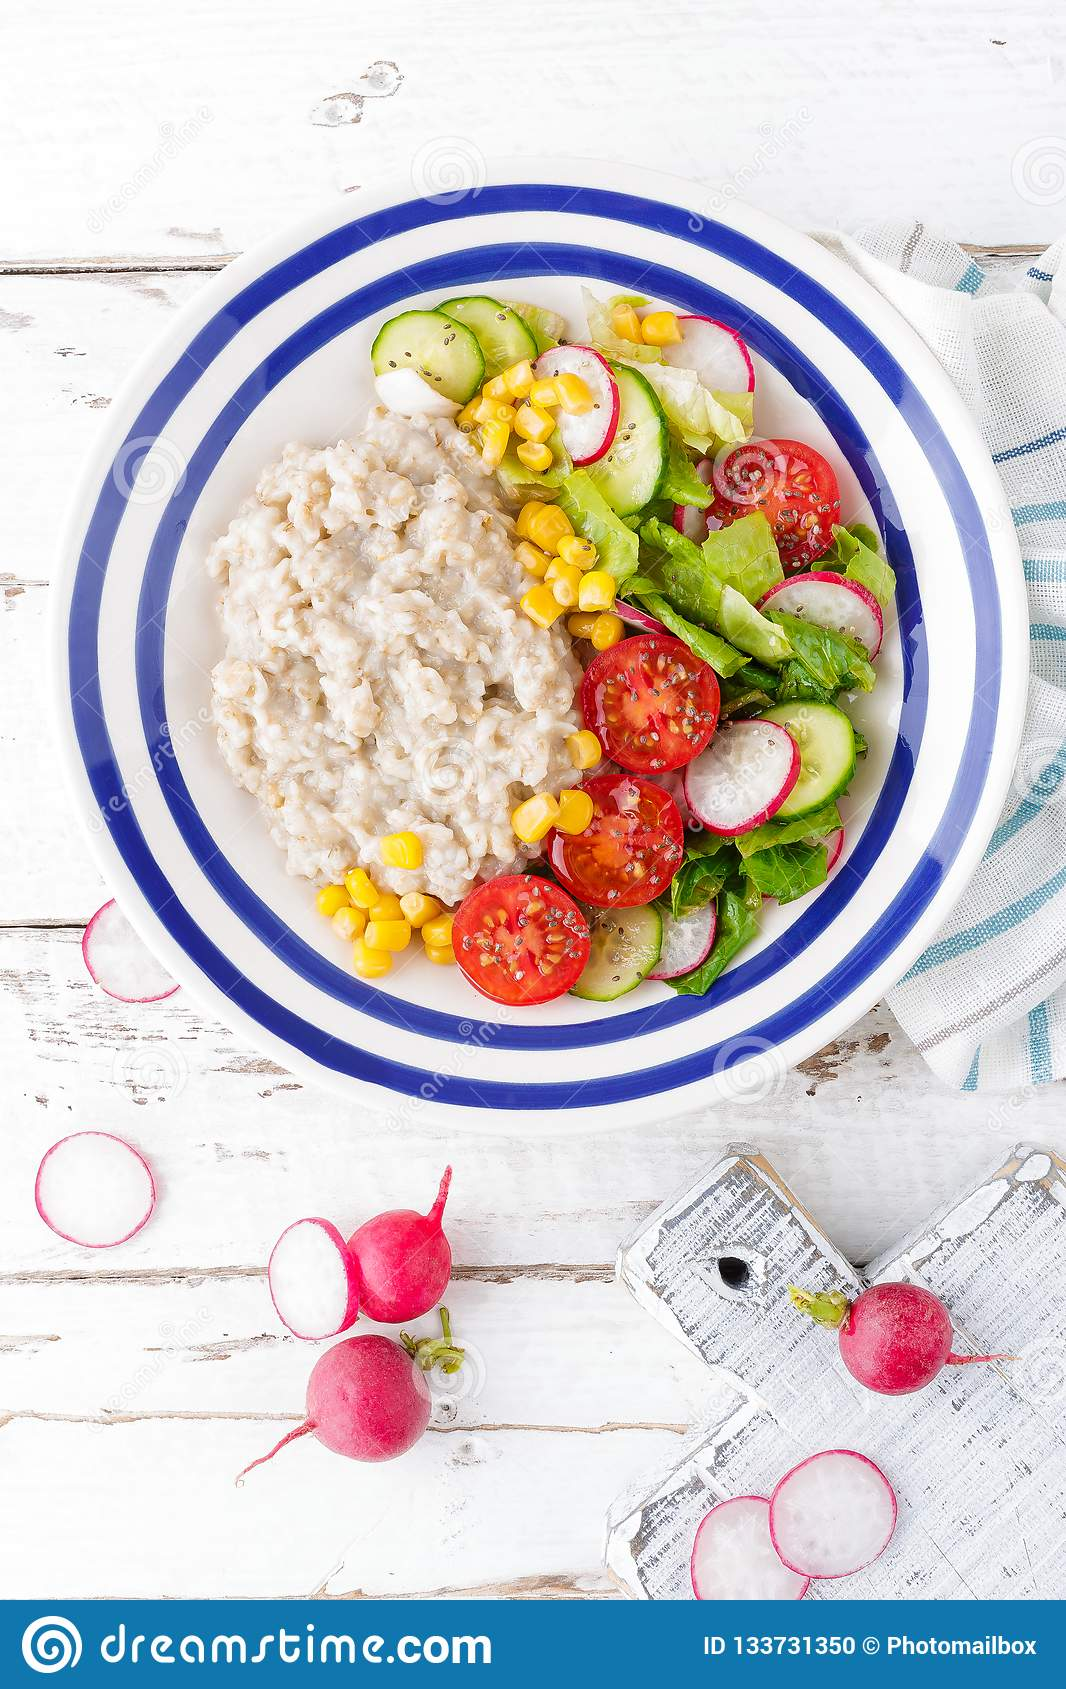 Oatmeal porridge with vegetable salad of fresh tomatoes, corn, cucumber and lettuce. Light, healthy and tasty dietary breakfast.